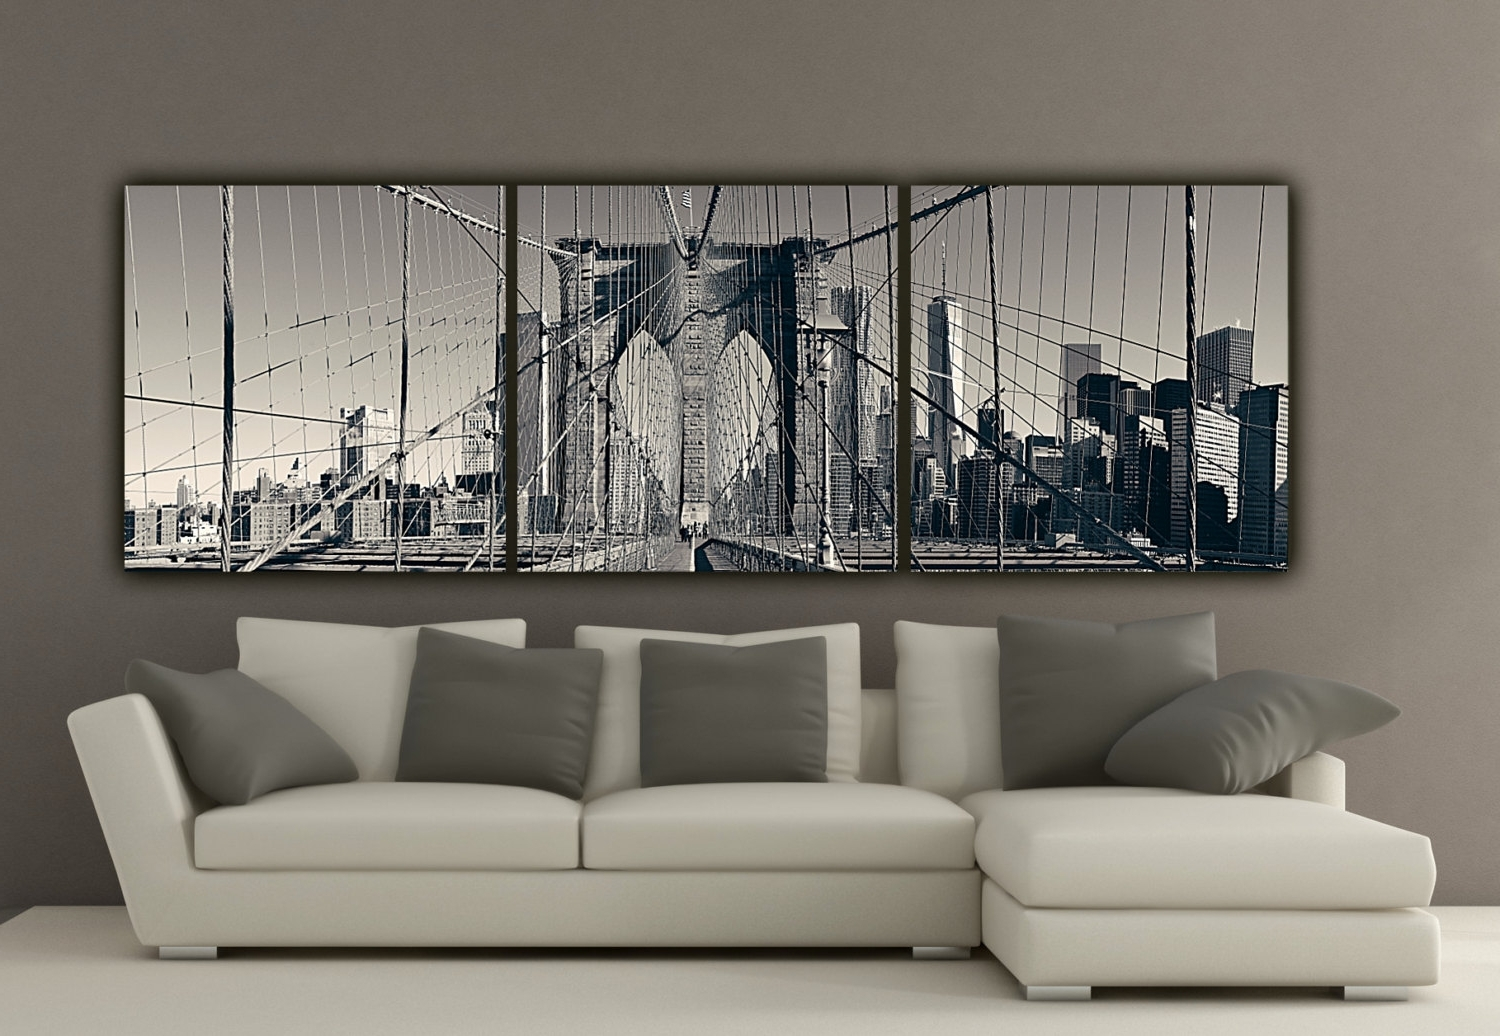 Modern Large Canvas Wall Art Throughout Most Up To Date Decor: Surprising Large Canvas Wall Art For Wall Décor Ideas (View 9 of 15)